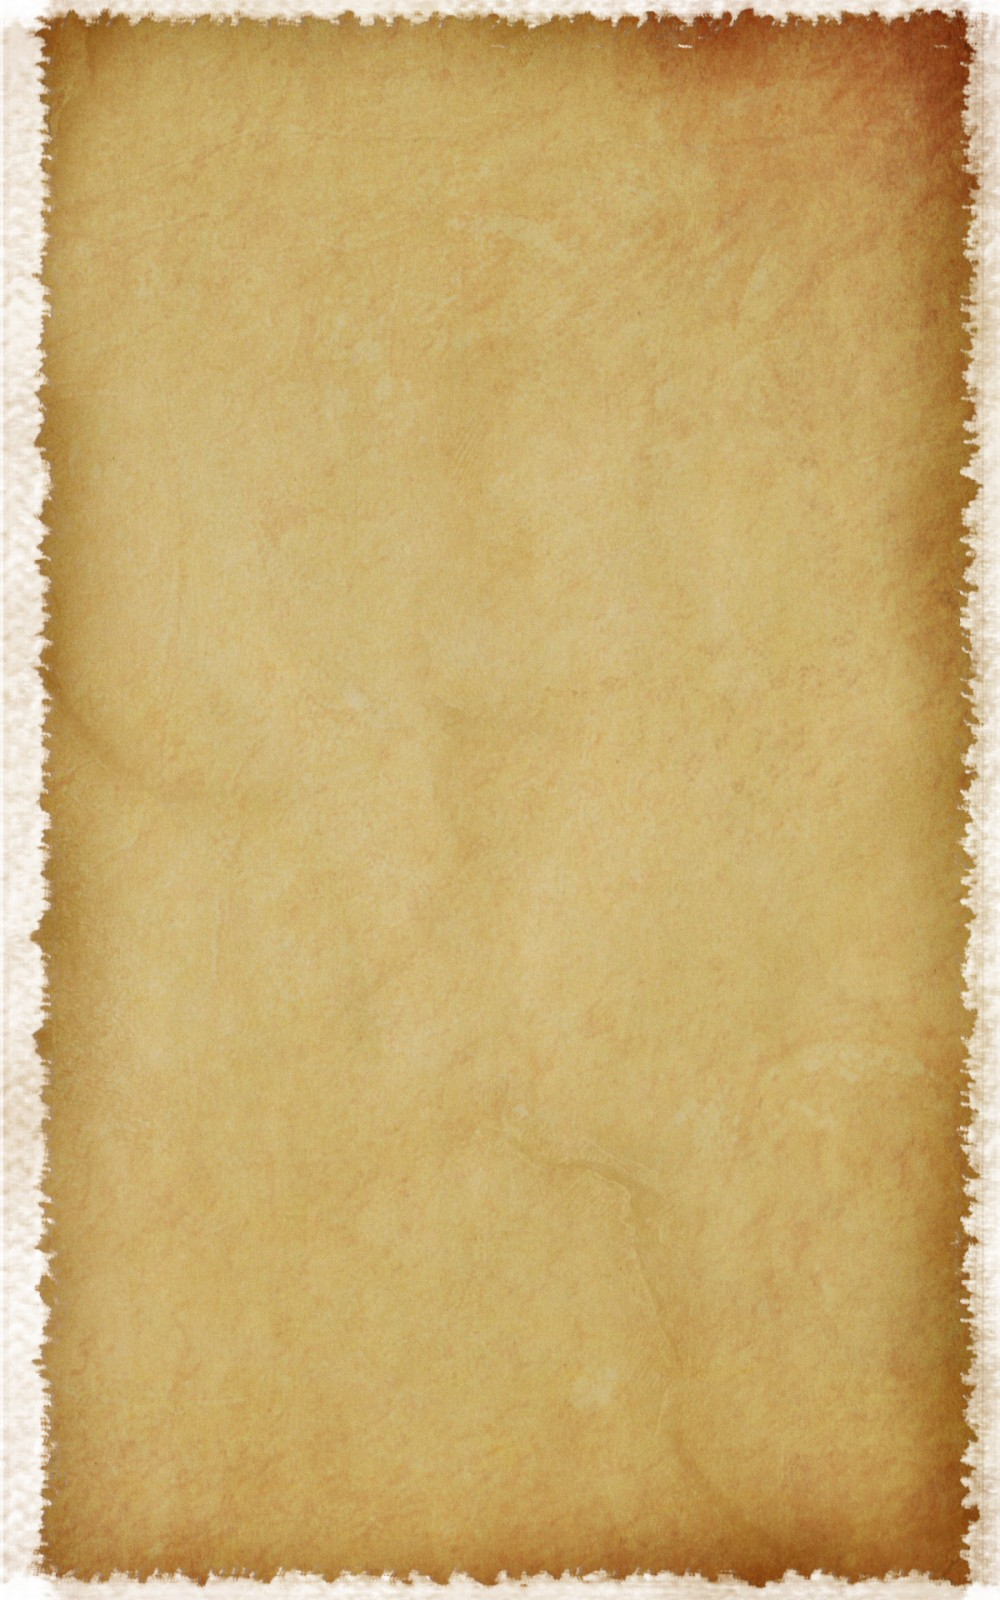 old paper ppt backgrounds - beige, educational, orange, white, Powerpoint templates